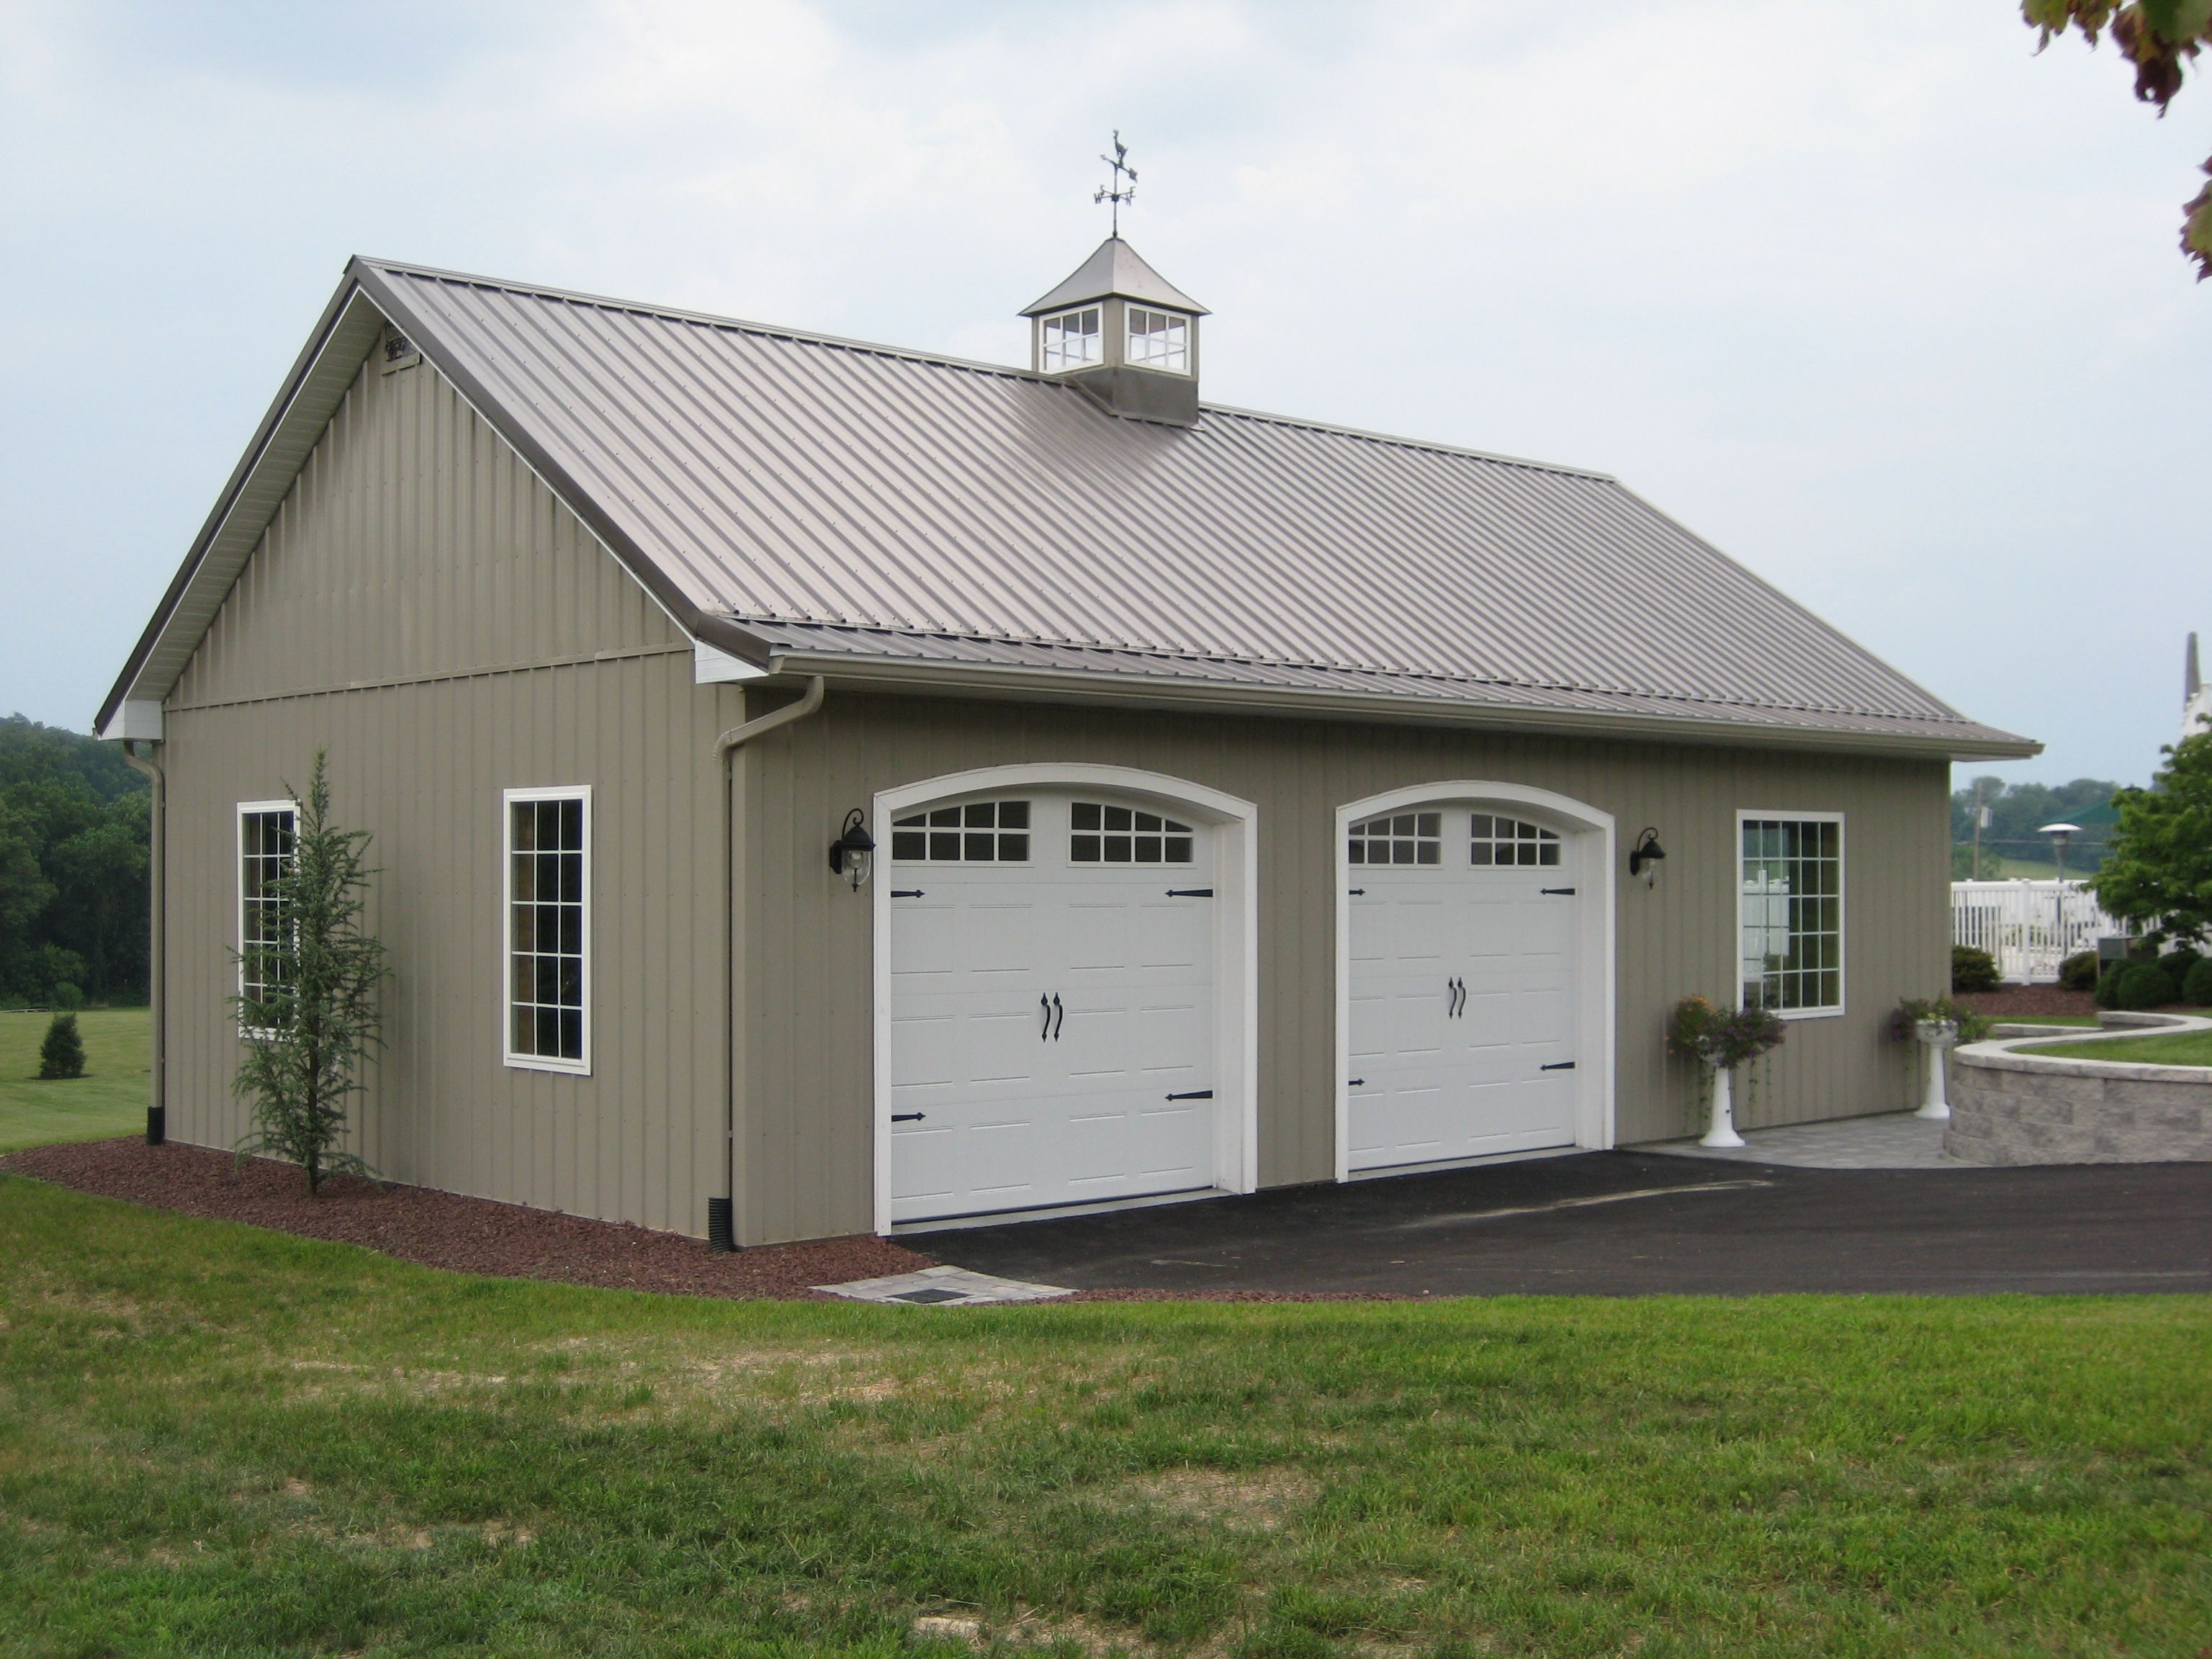 Best 25 pole barn garage ideas on pinterest pole barns for Pole barn homes pictures